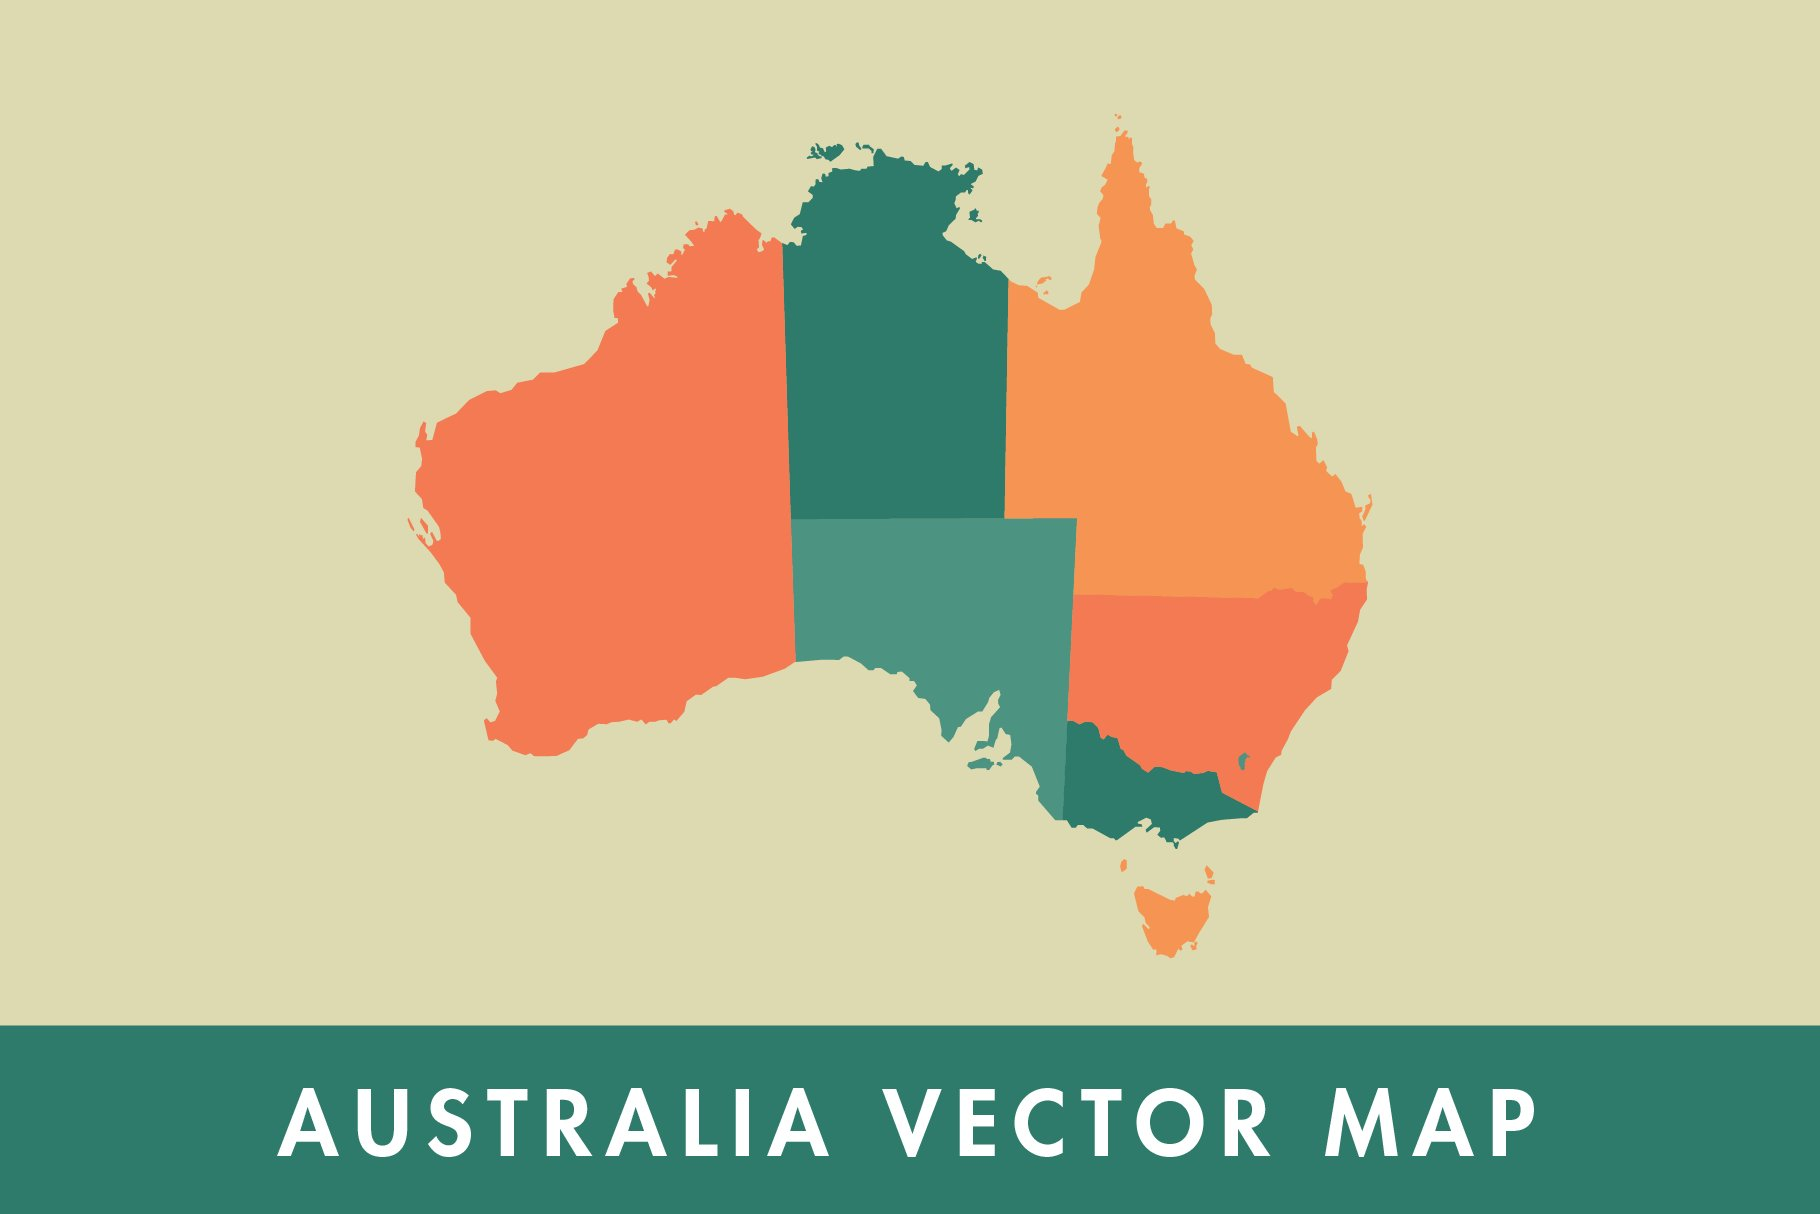 Australia Map Vector Ai.Australia Vector Map Illustrations Creative Market